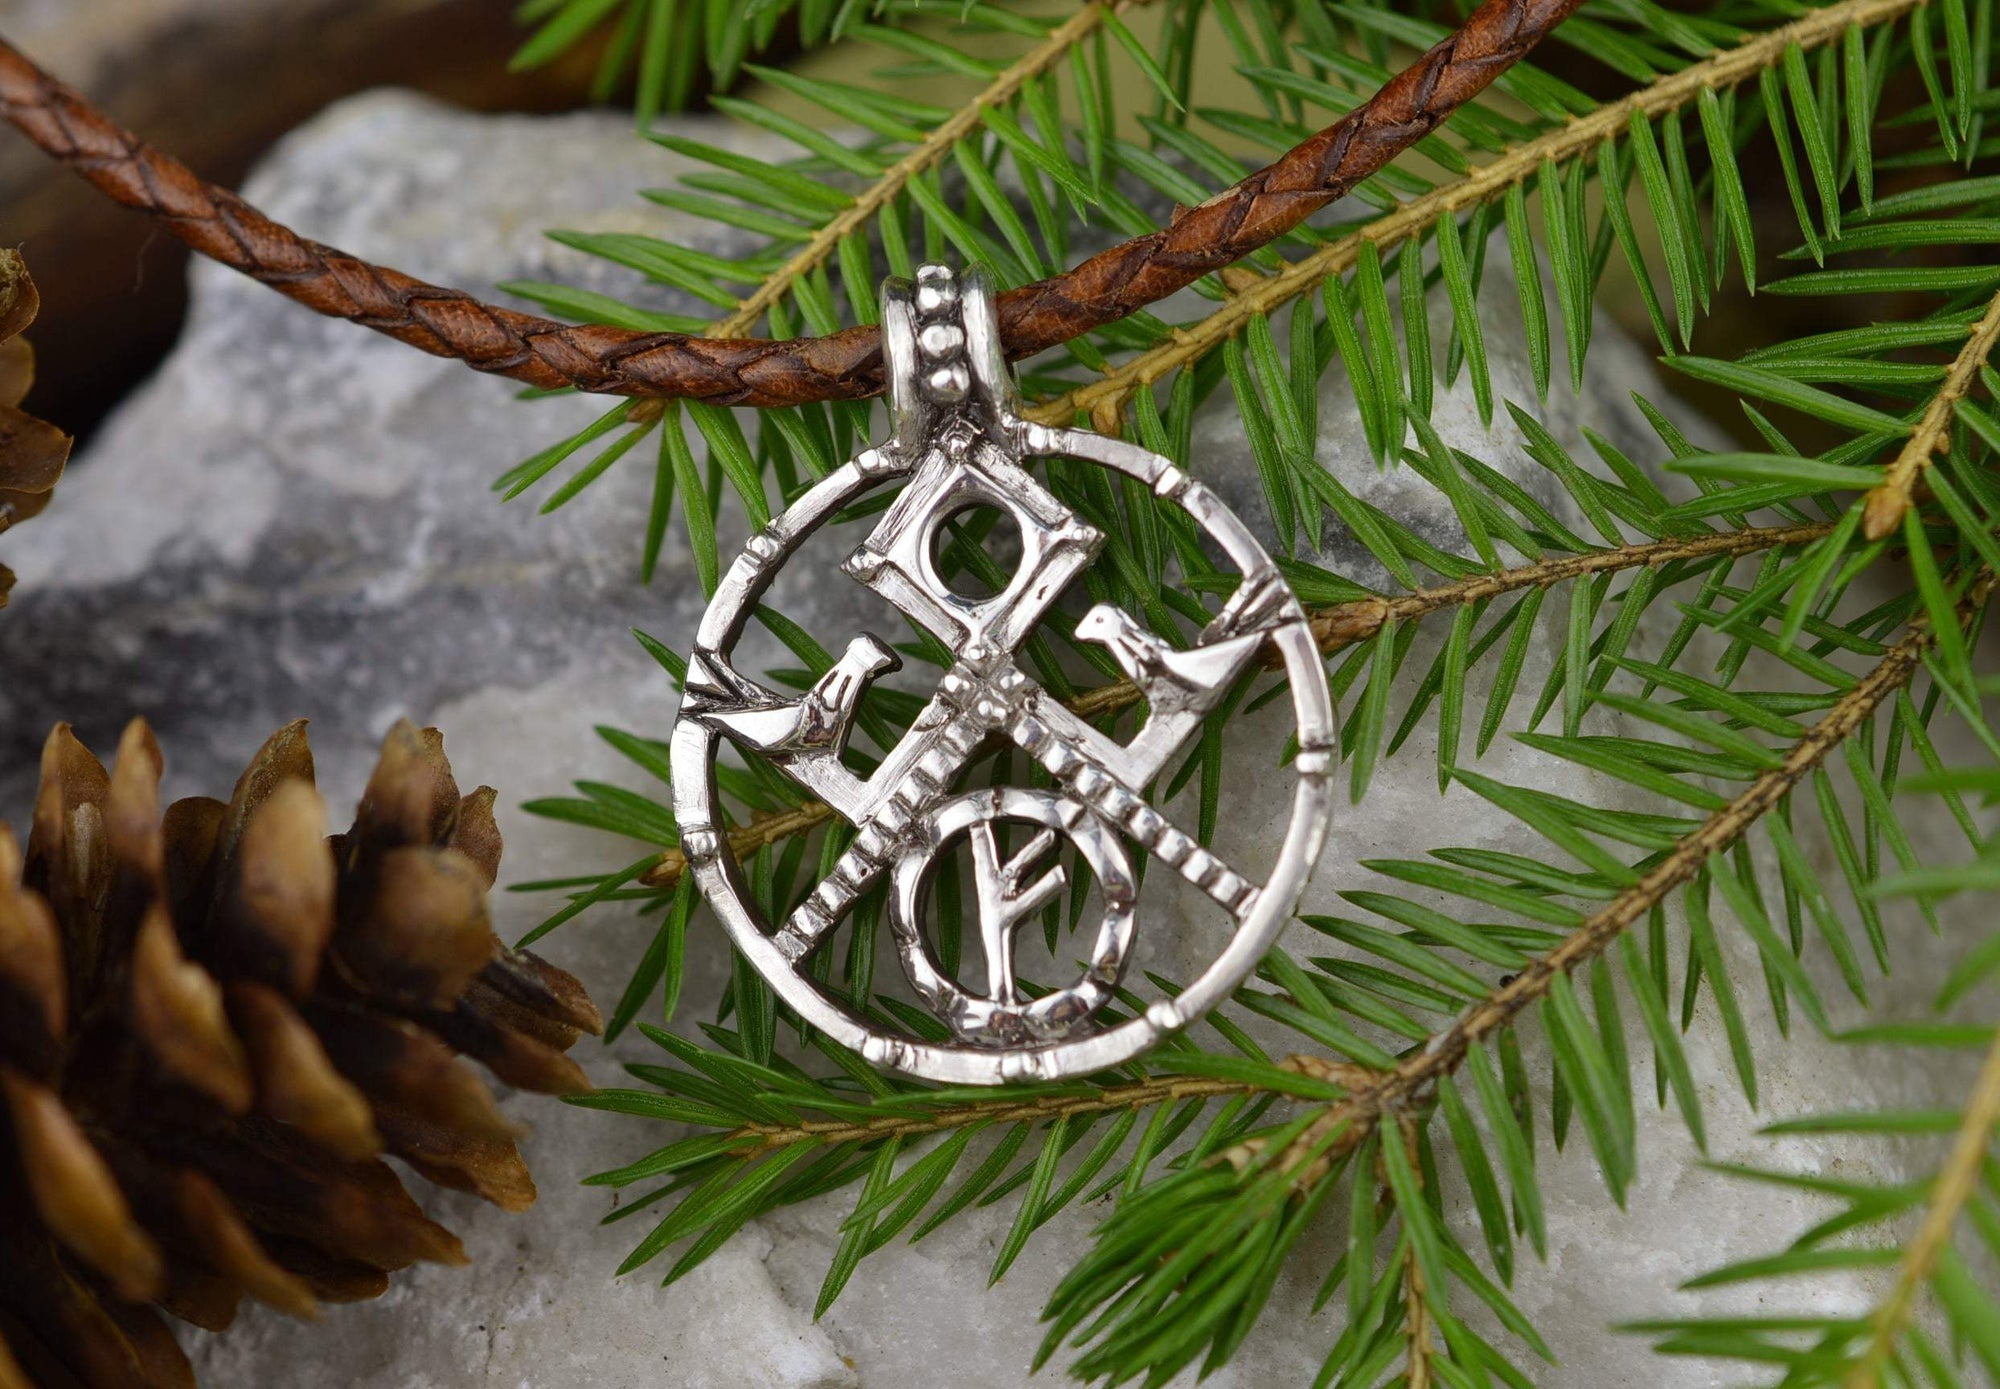 Viking Goddess Frigg Symbol Handmade Pendant Amulet Ancient Treasures Ancientreasures Viking Odin Thor Mjolnir Celtic Ancient Egypt Norse Norse Mythology